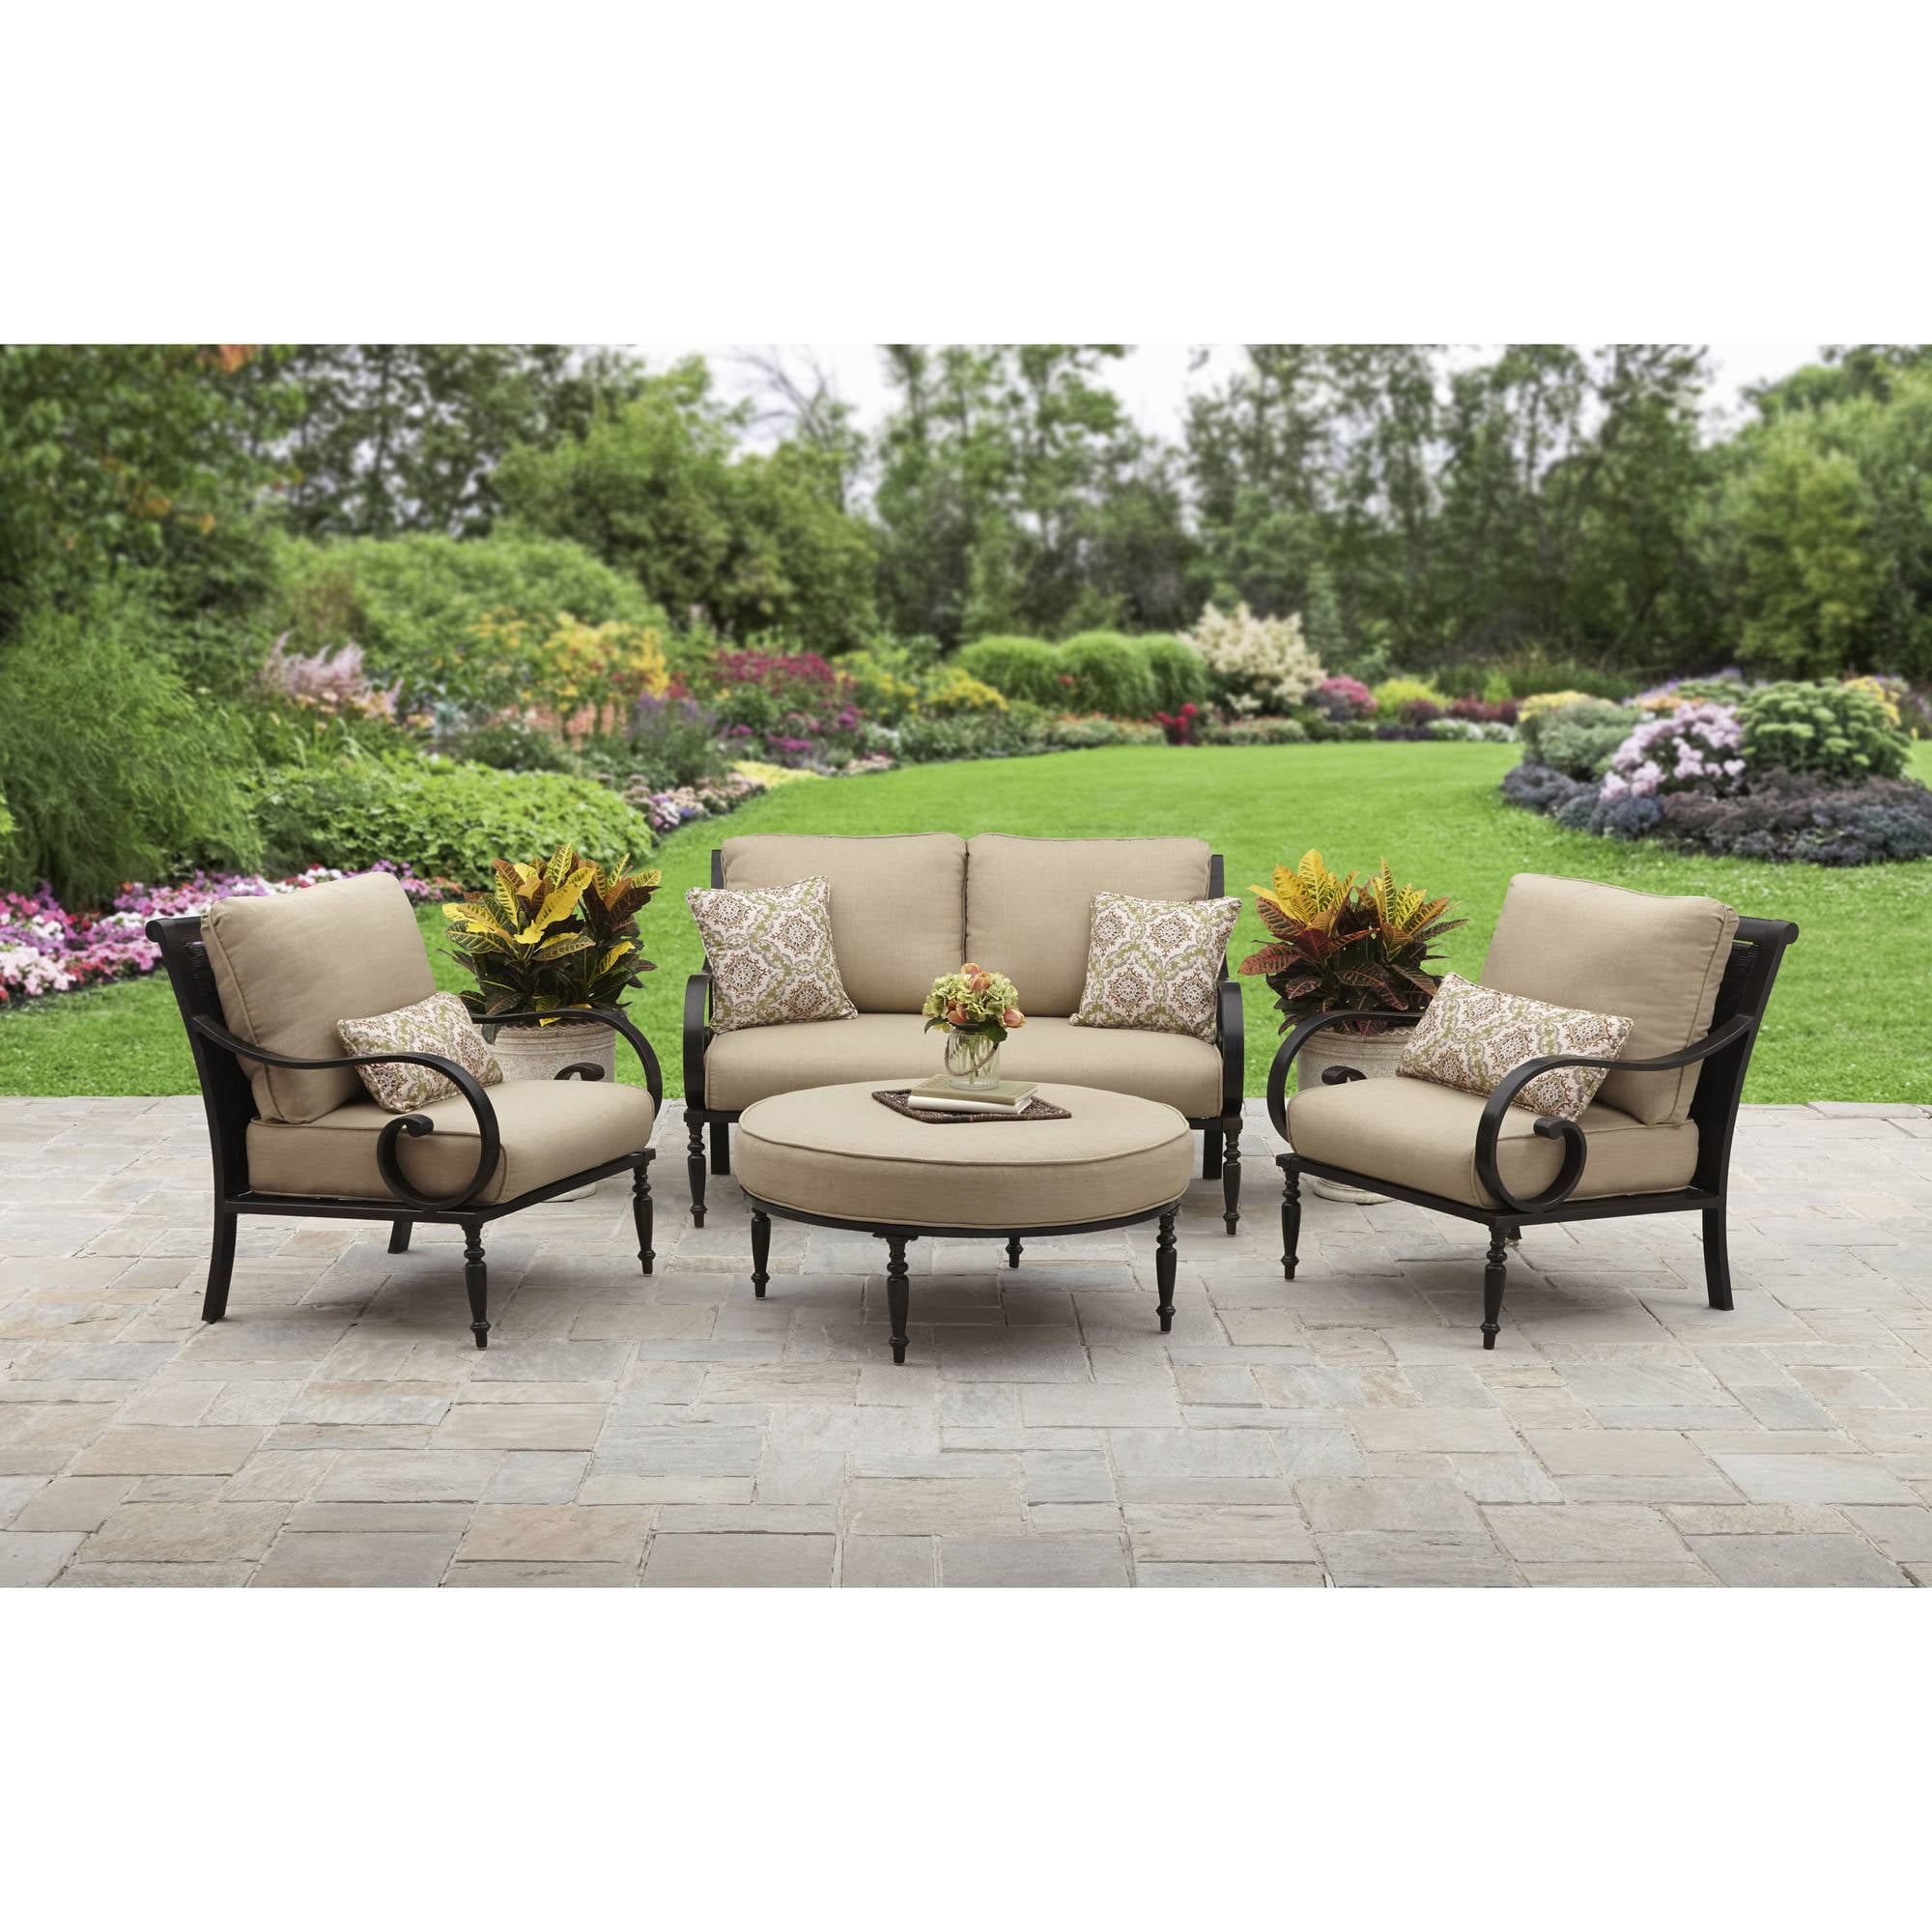 Better Homes And Gardens Mira Bay 5 Piece Leisure Set   Walmart.com